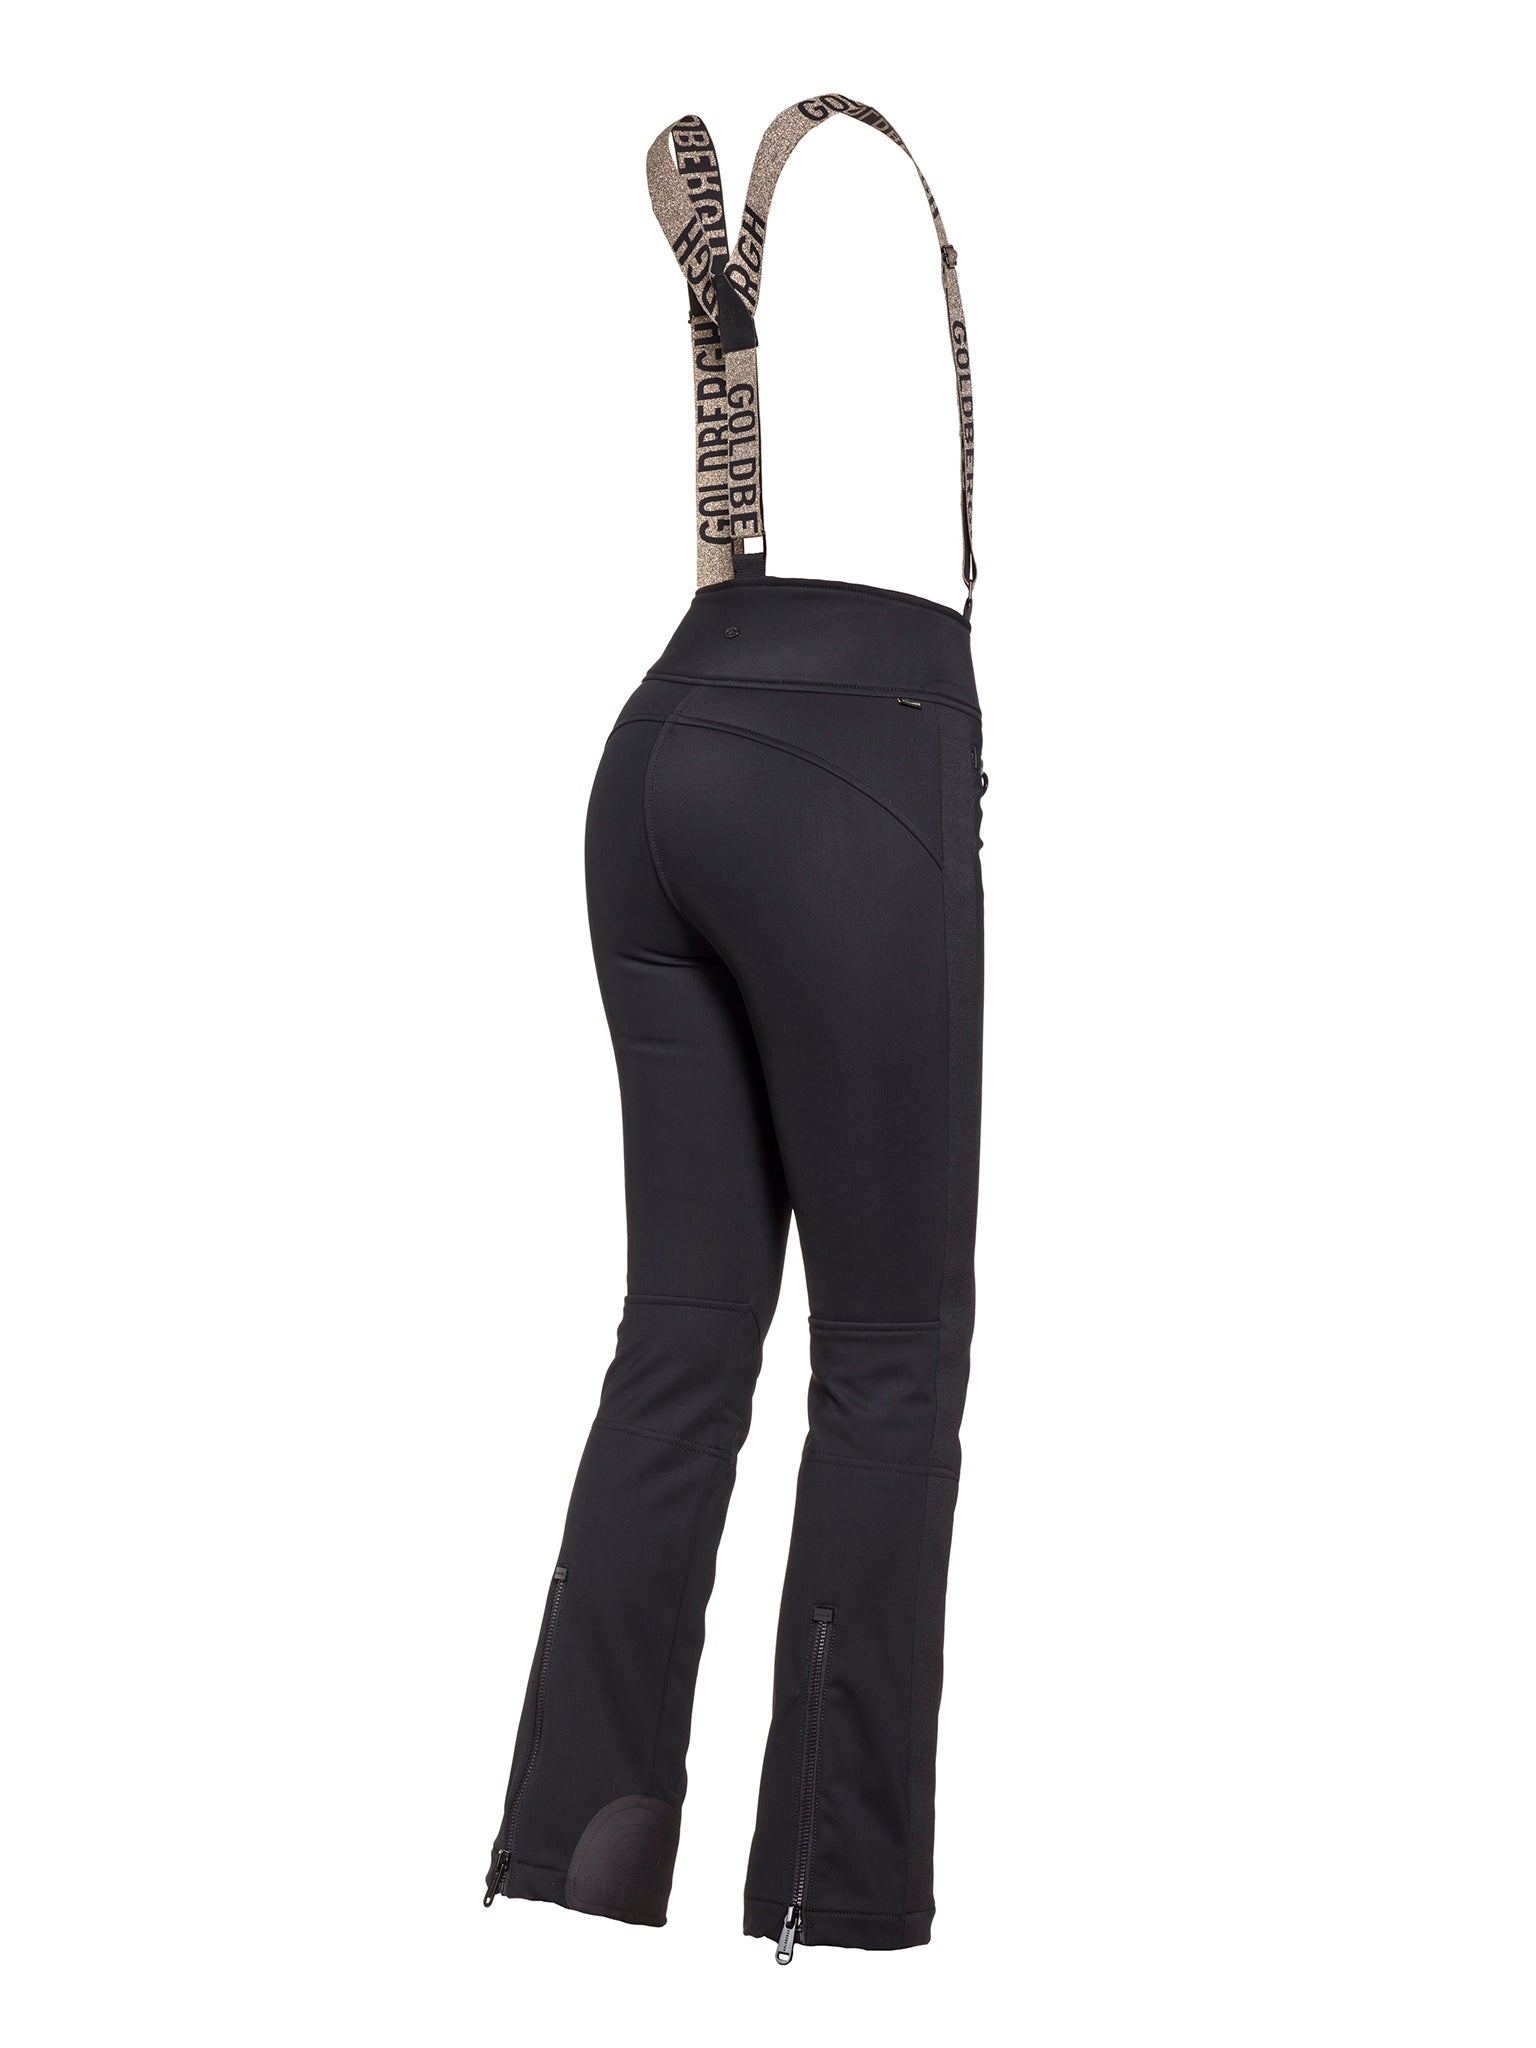 High End High Waisted Ski Pants with Suspenders - Black/ Gold